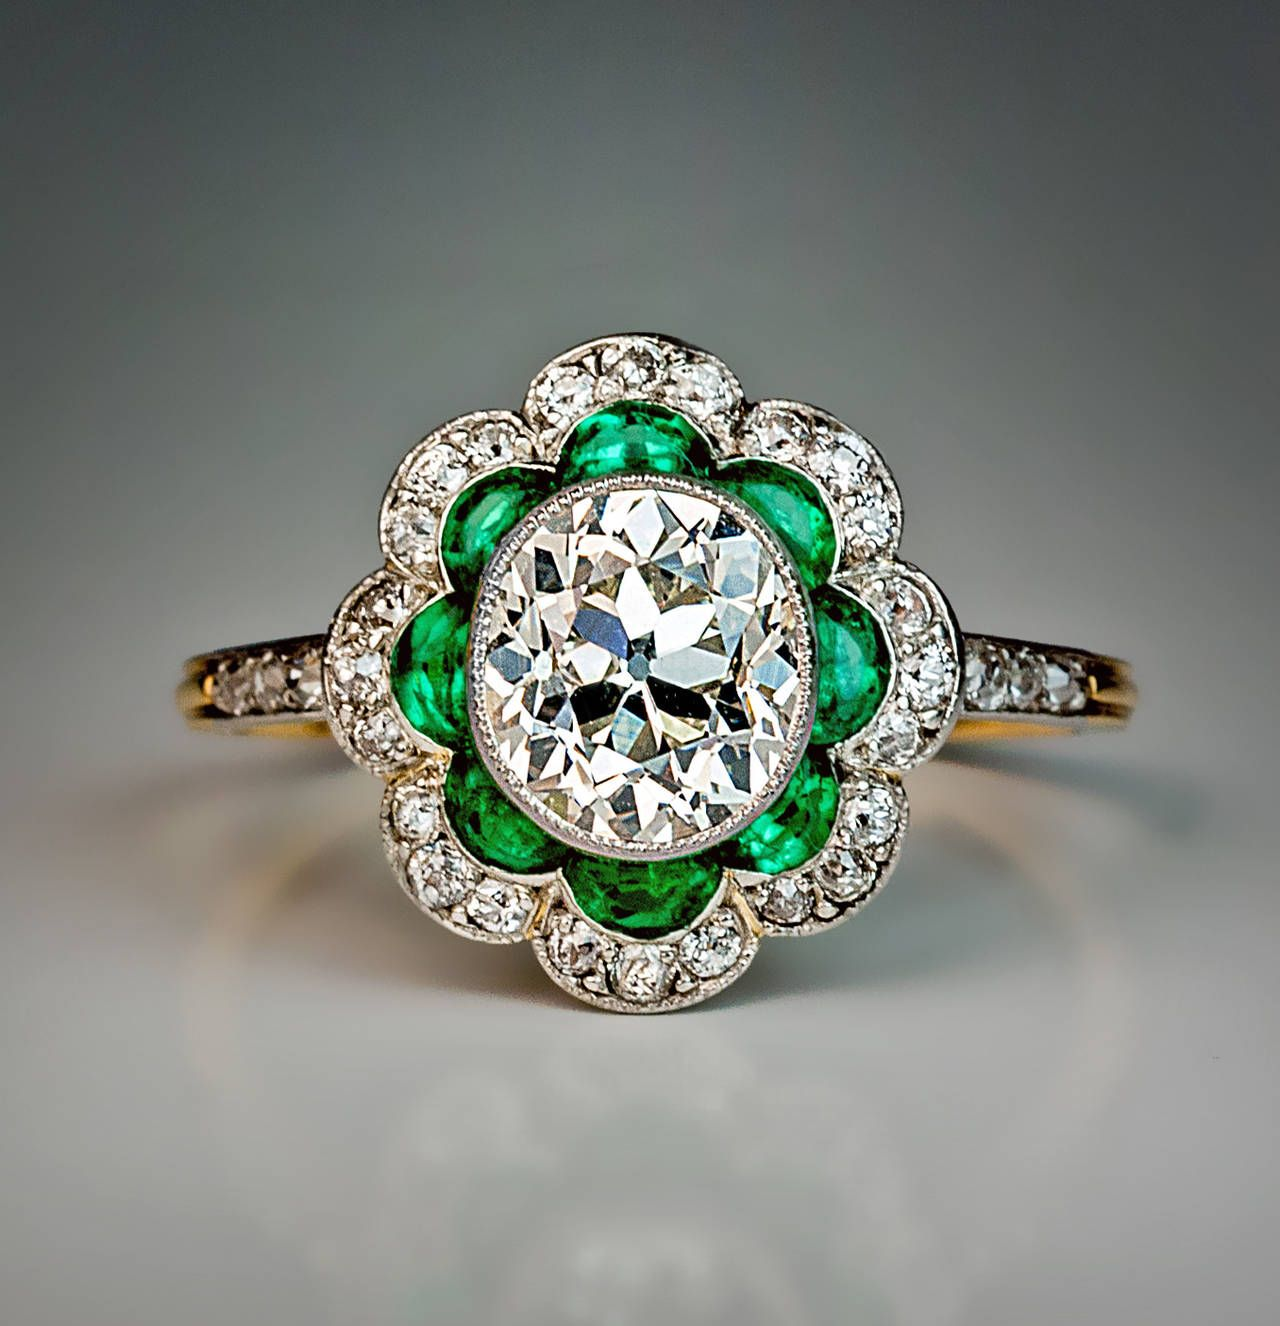 1920s Art Deco Emerald Diamond Platinum Engagement Ring From A Unique Collection Of Vintage: Gothic Style Wedding Rings Etsy At Reisefeber.org